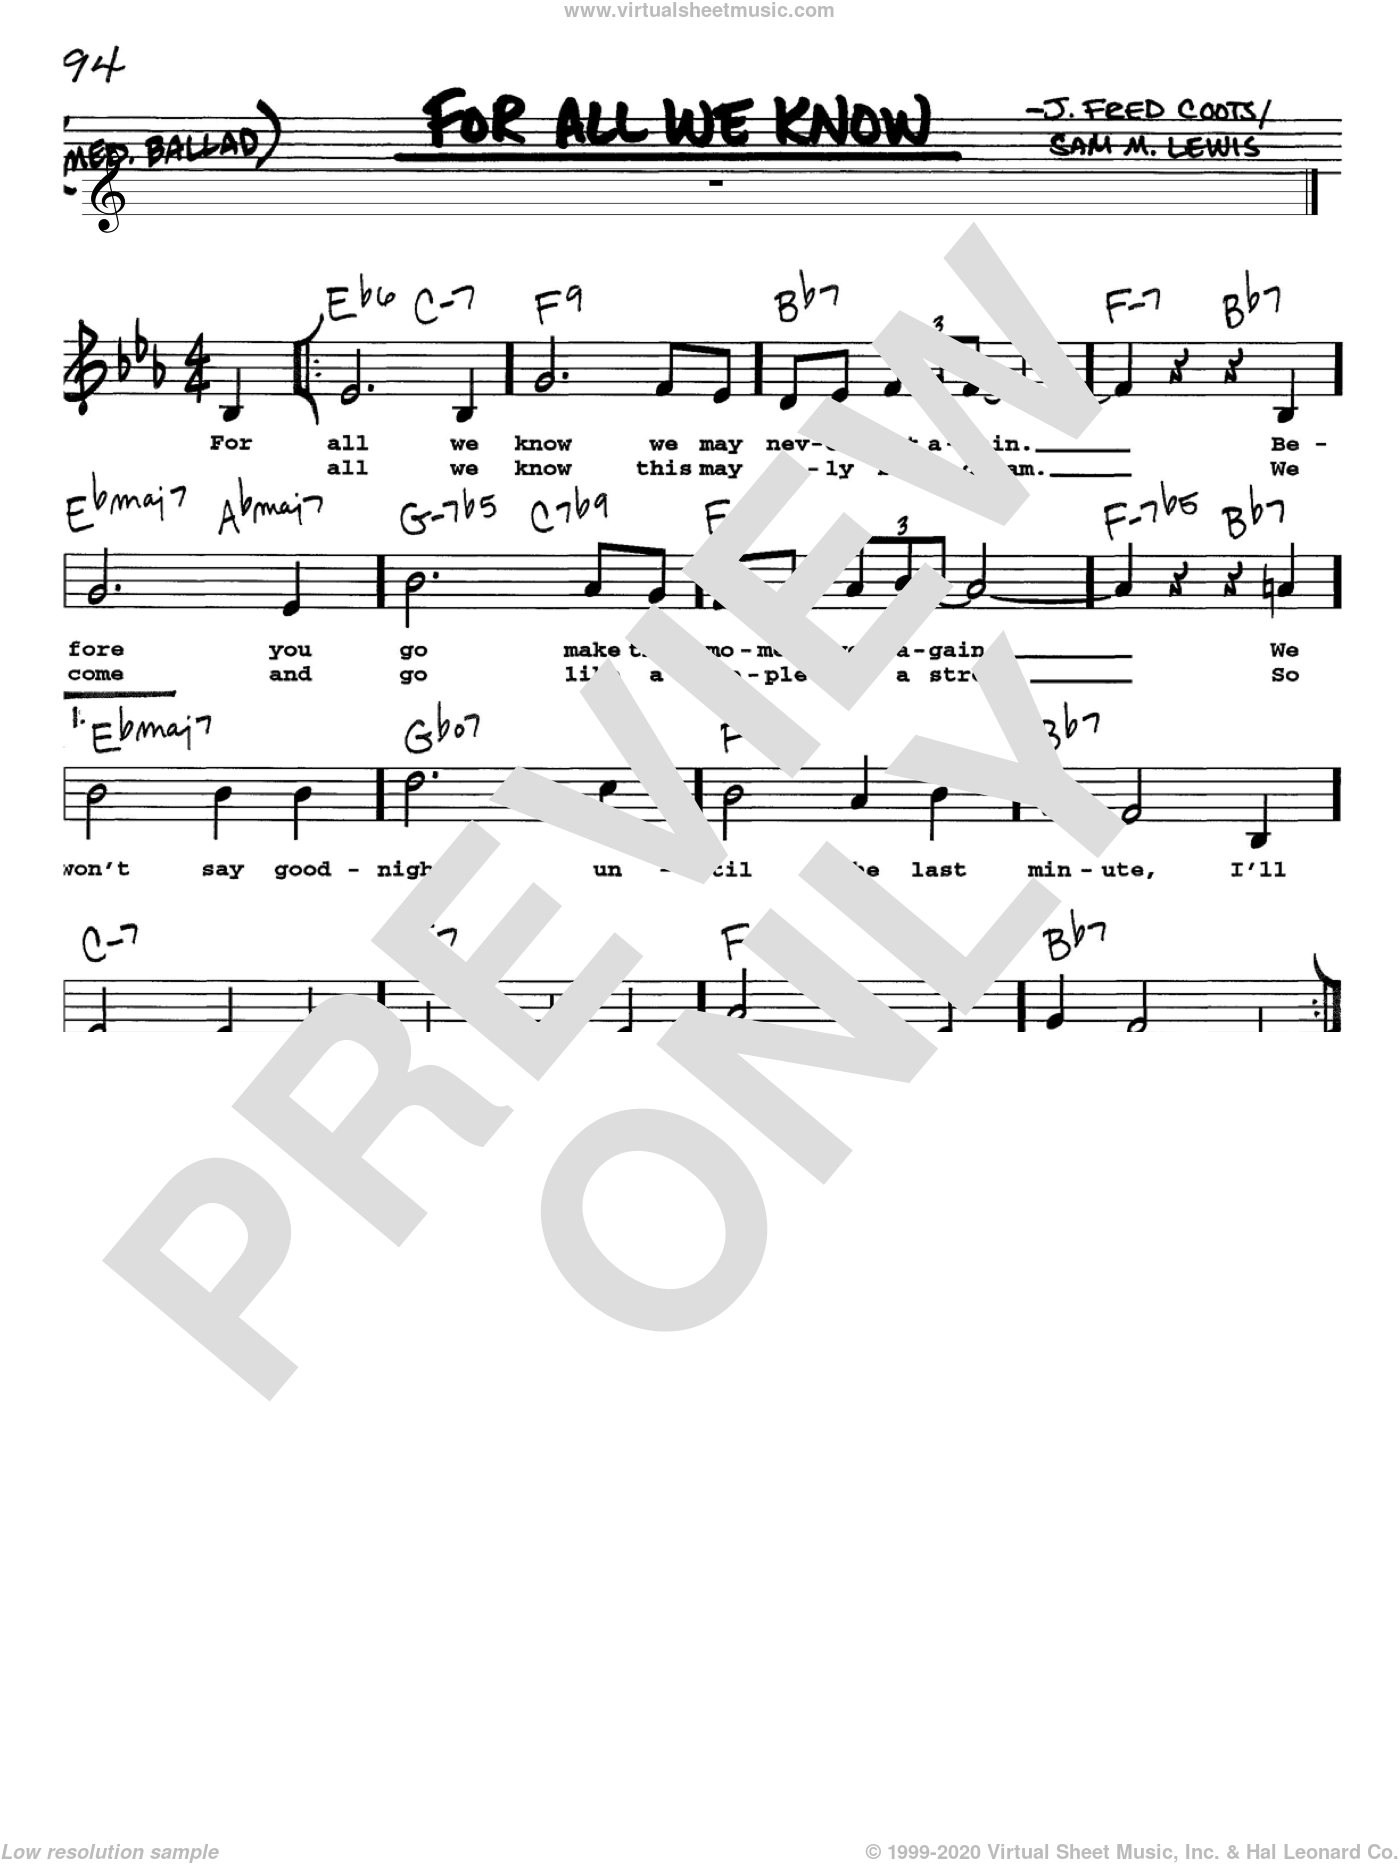 For All We Know sheet music for voice and other instruments (Vocal Volume 1) by J. Fred Coots and Sam Lewis. Score Image Preview.